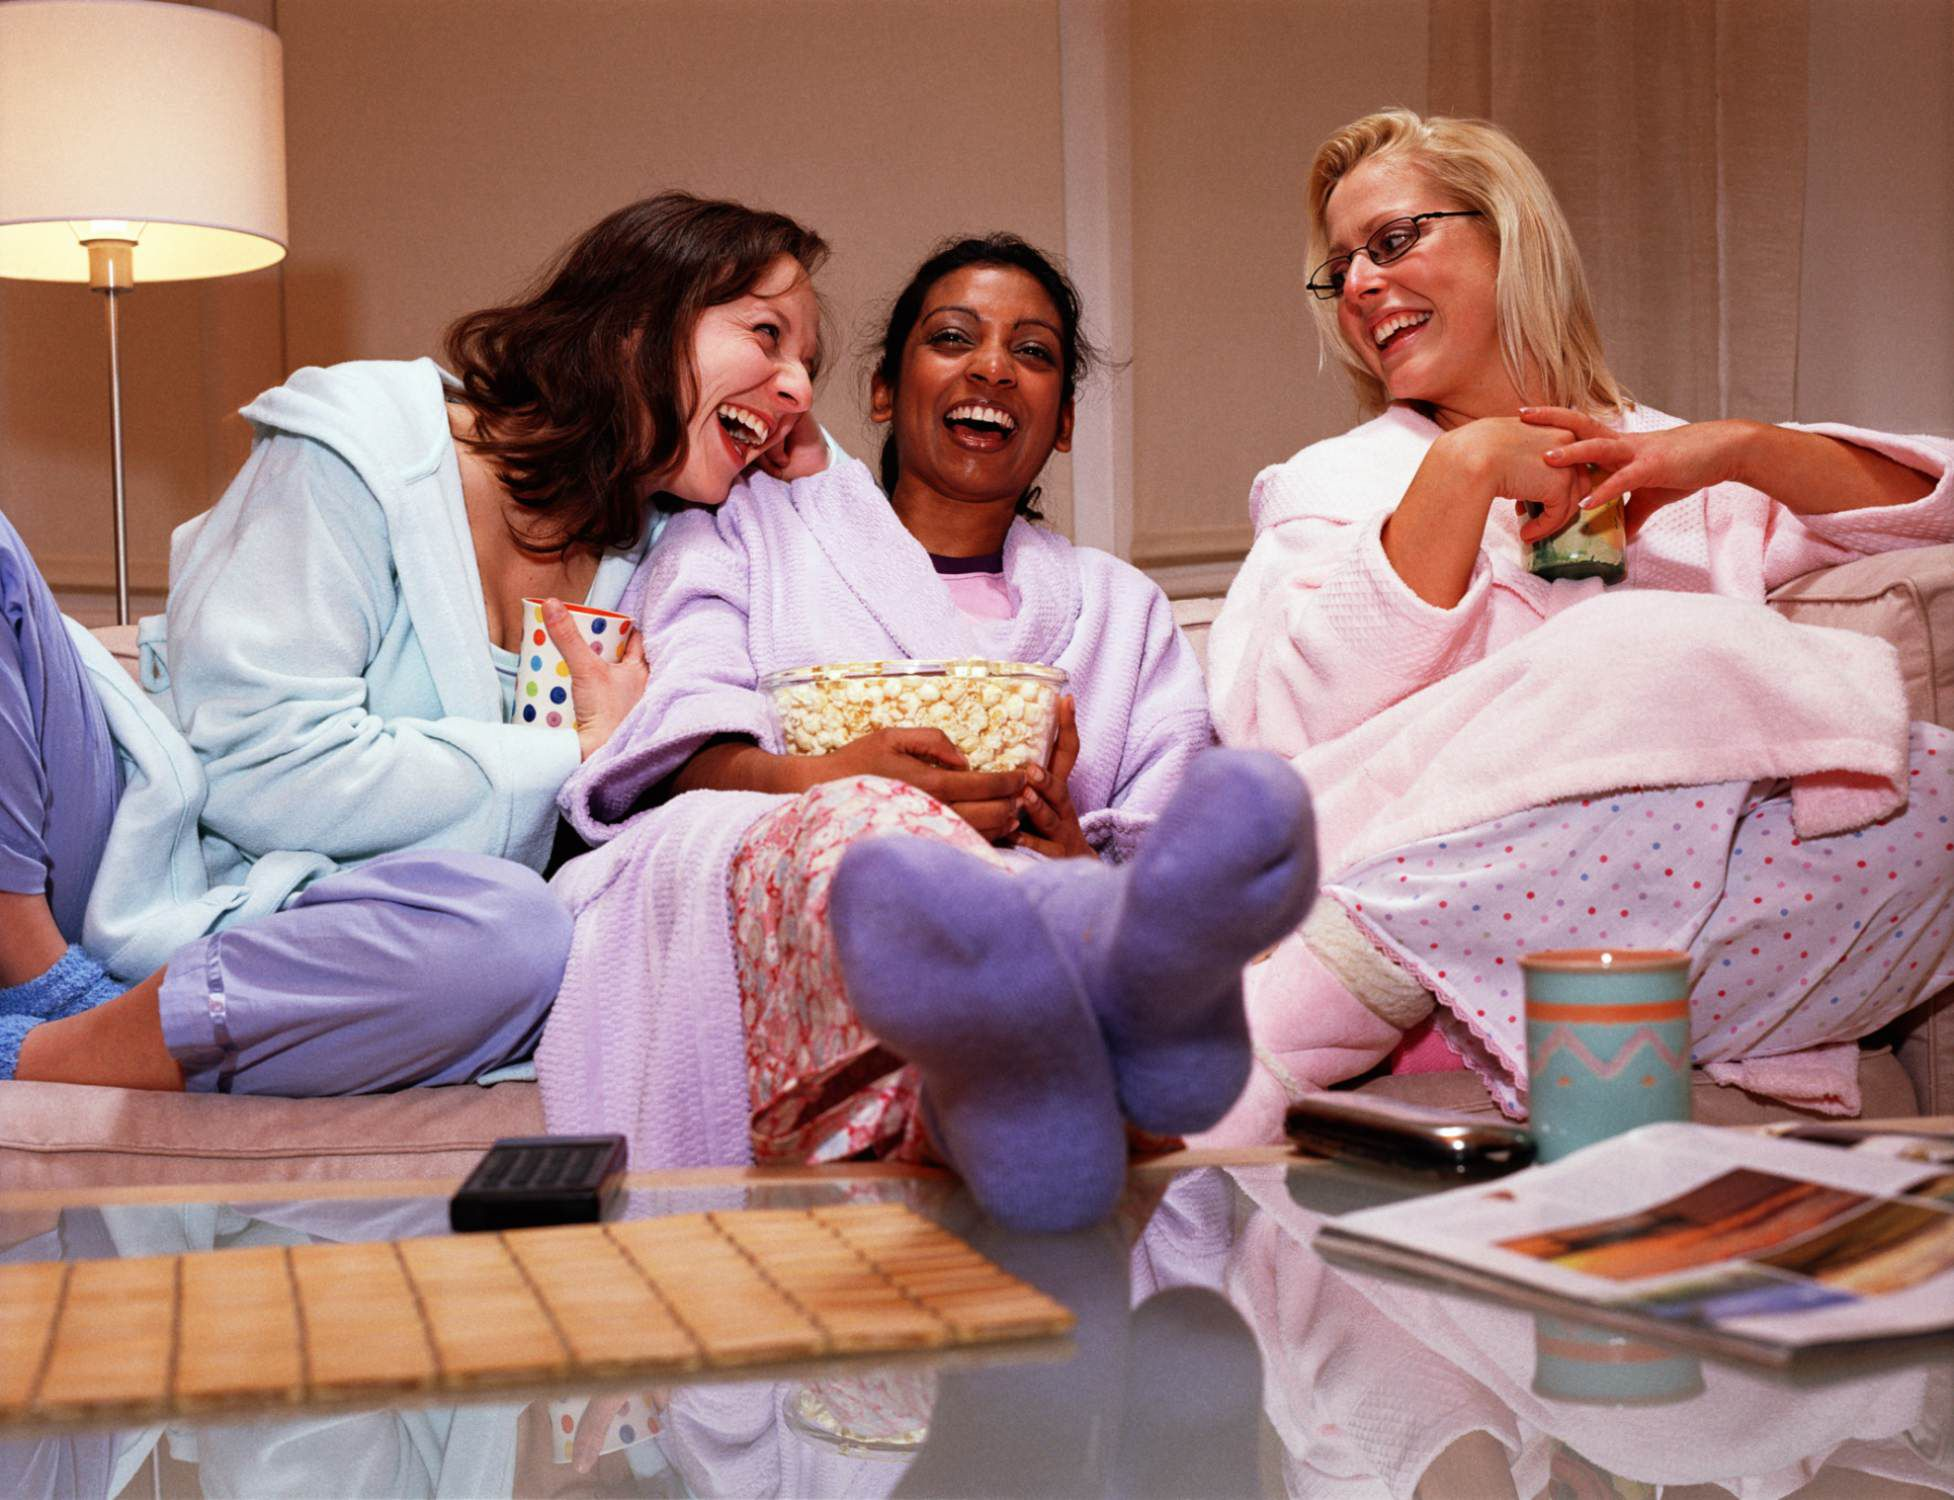 Top Girls' Night In Ideas To Let Off Some Steam